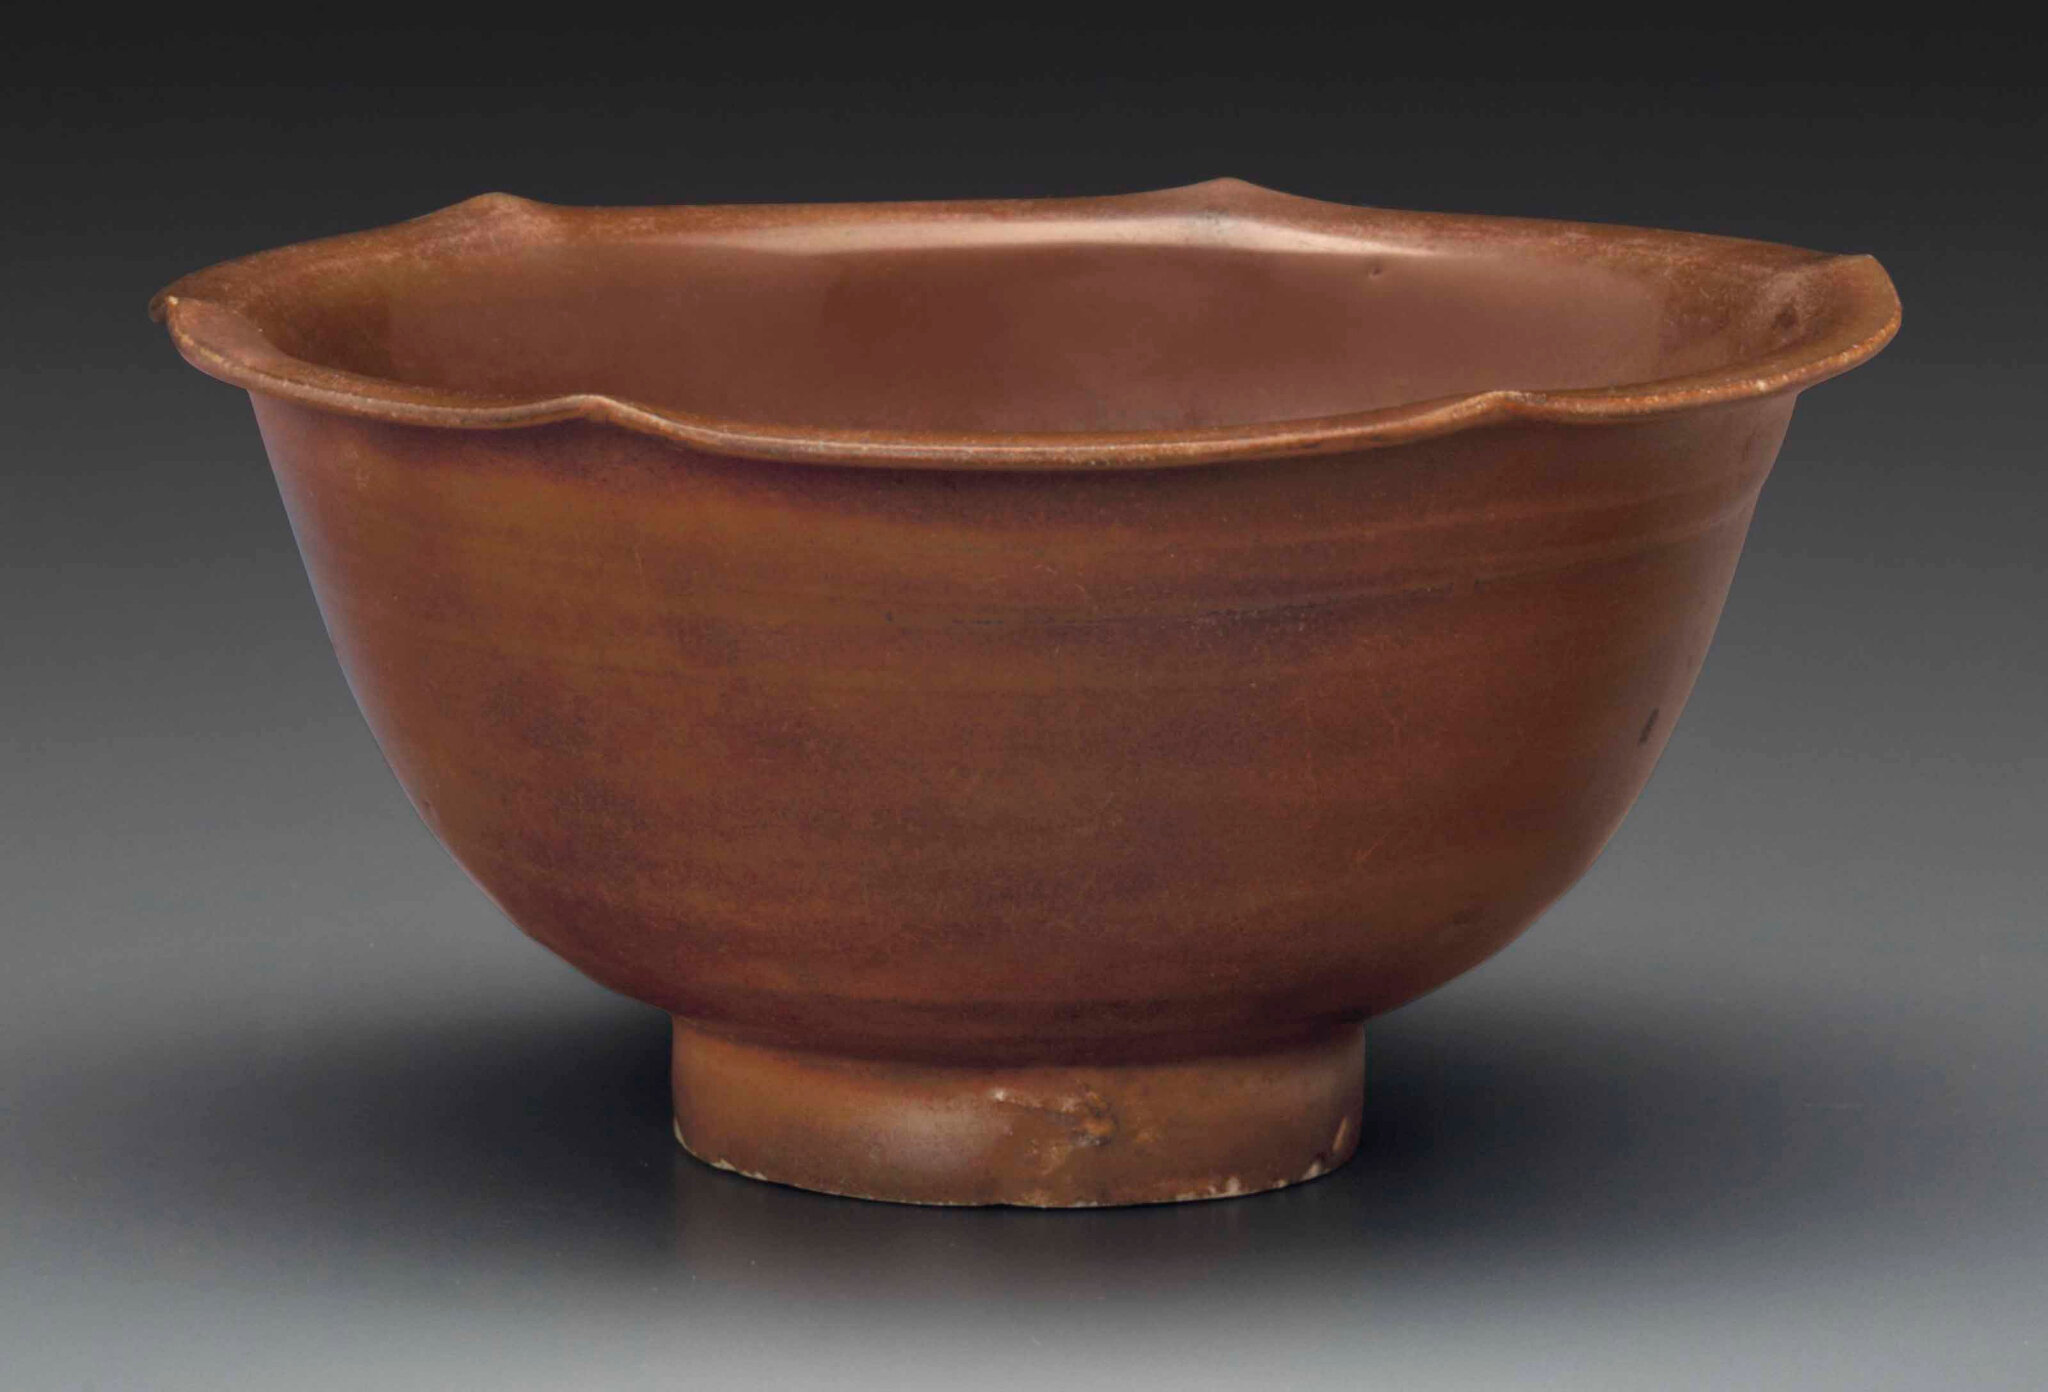 A russet-glazed Yaozhou bowl, Northern Song Dynasty, 11th century